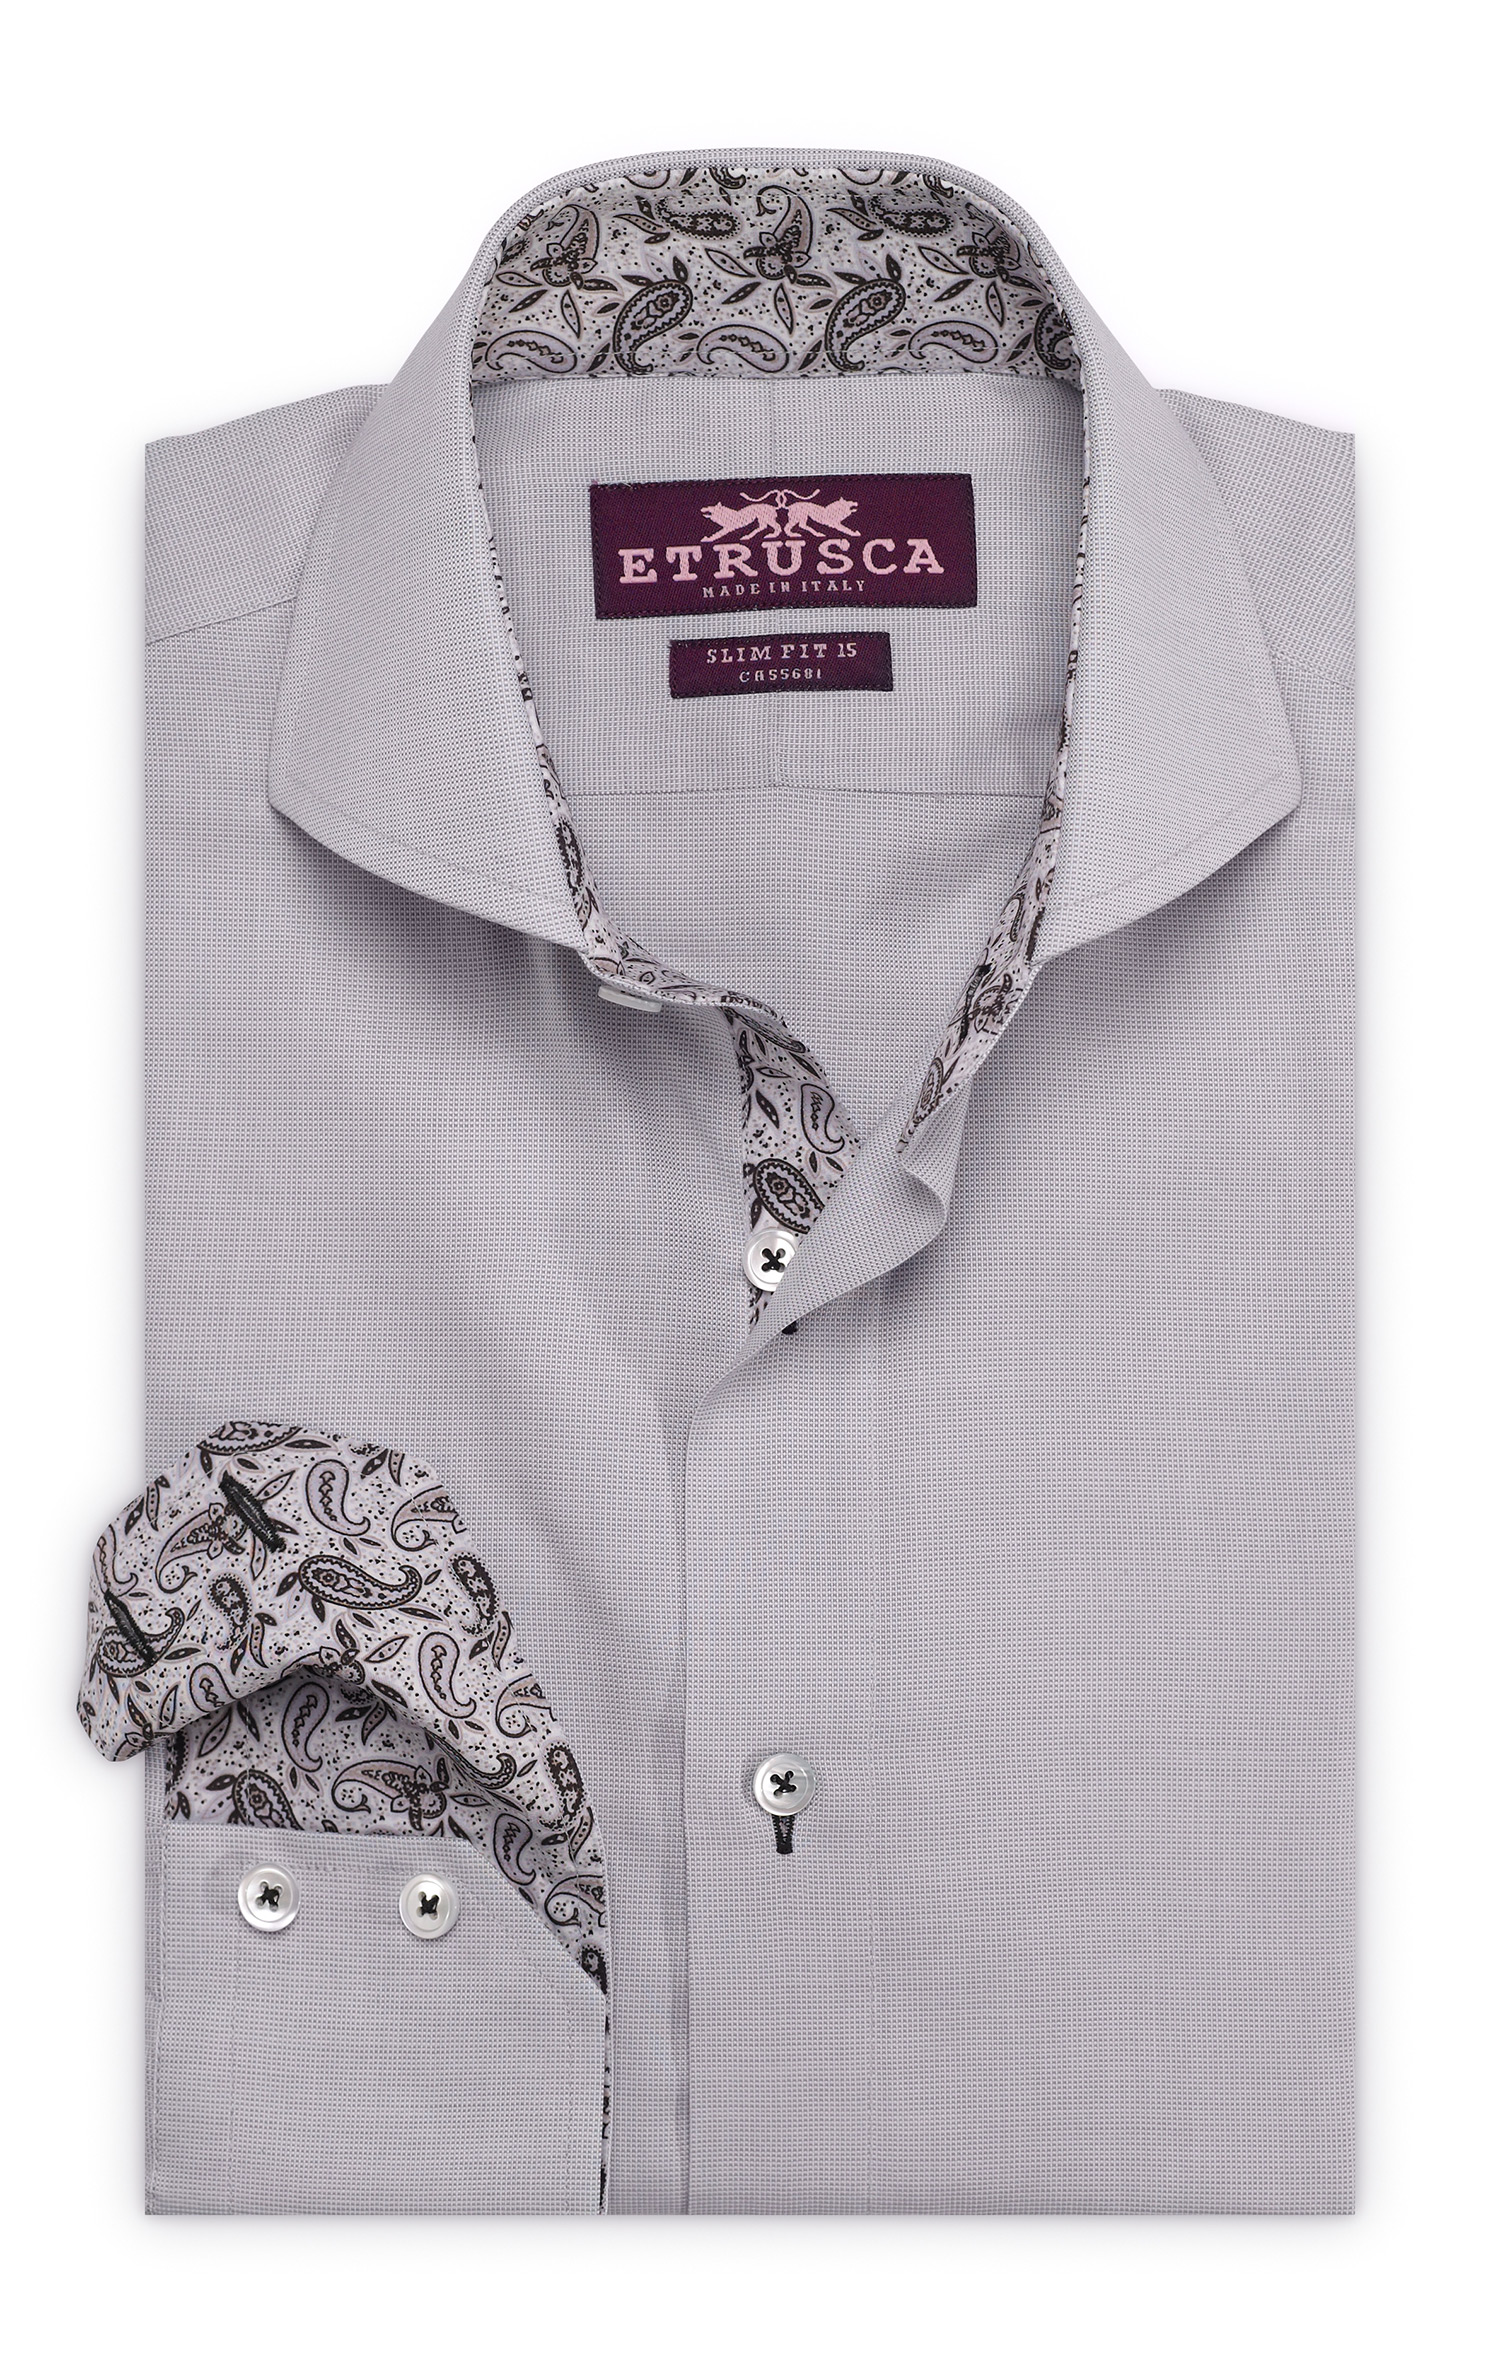 Etrusca-Collezione-Due-Scapolo-Grey-Light-Paisley-Contrast-Folded-001.jpg